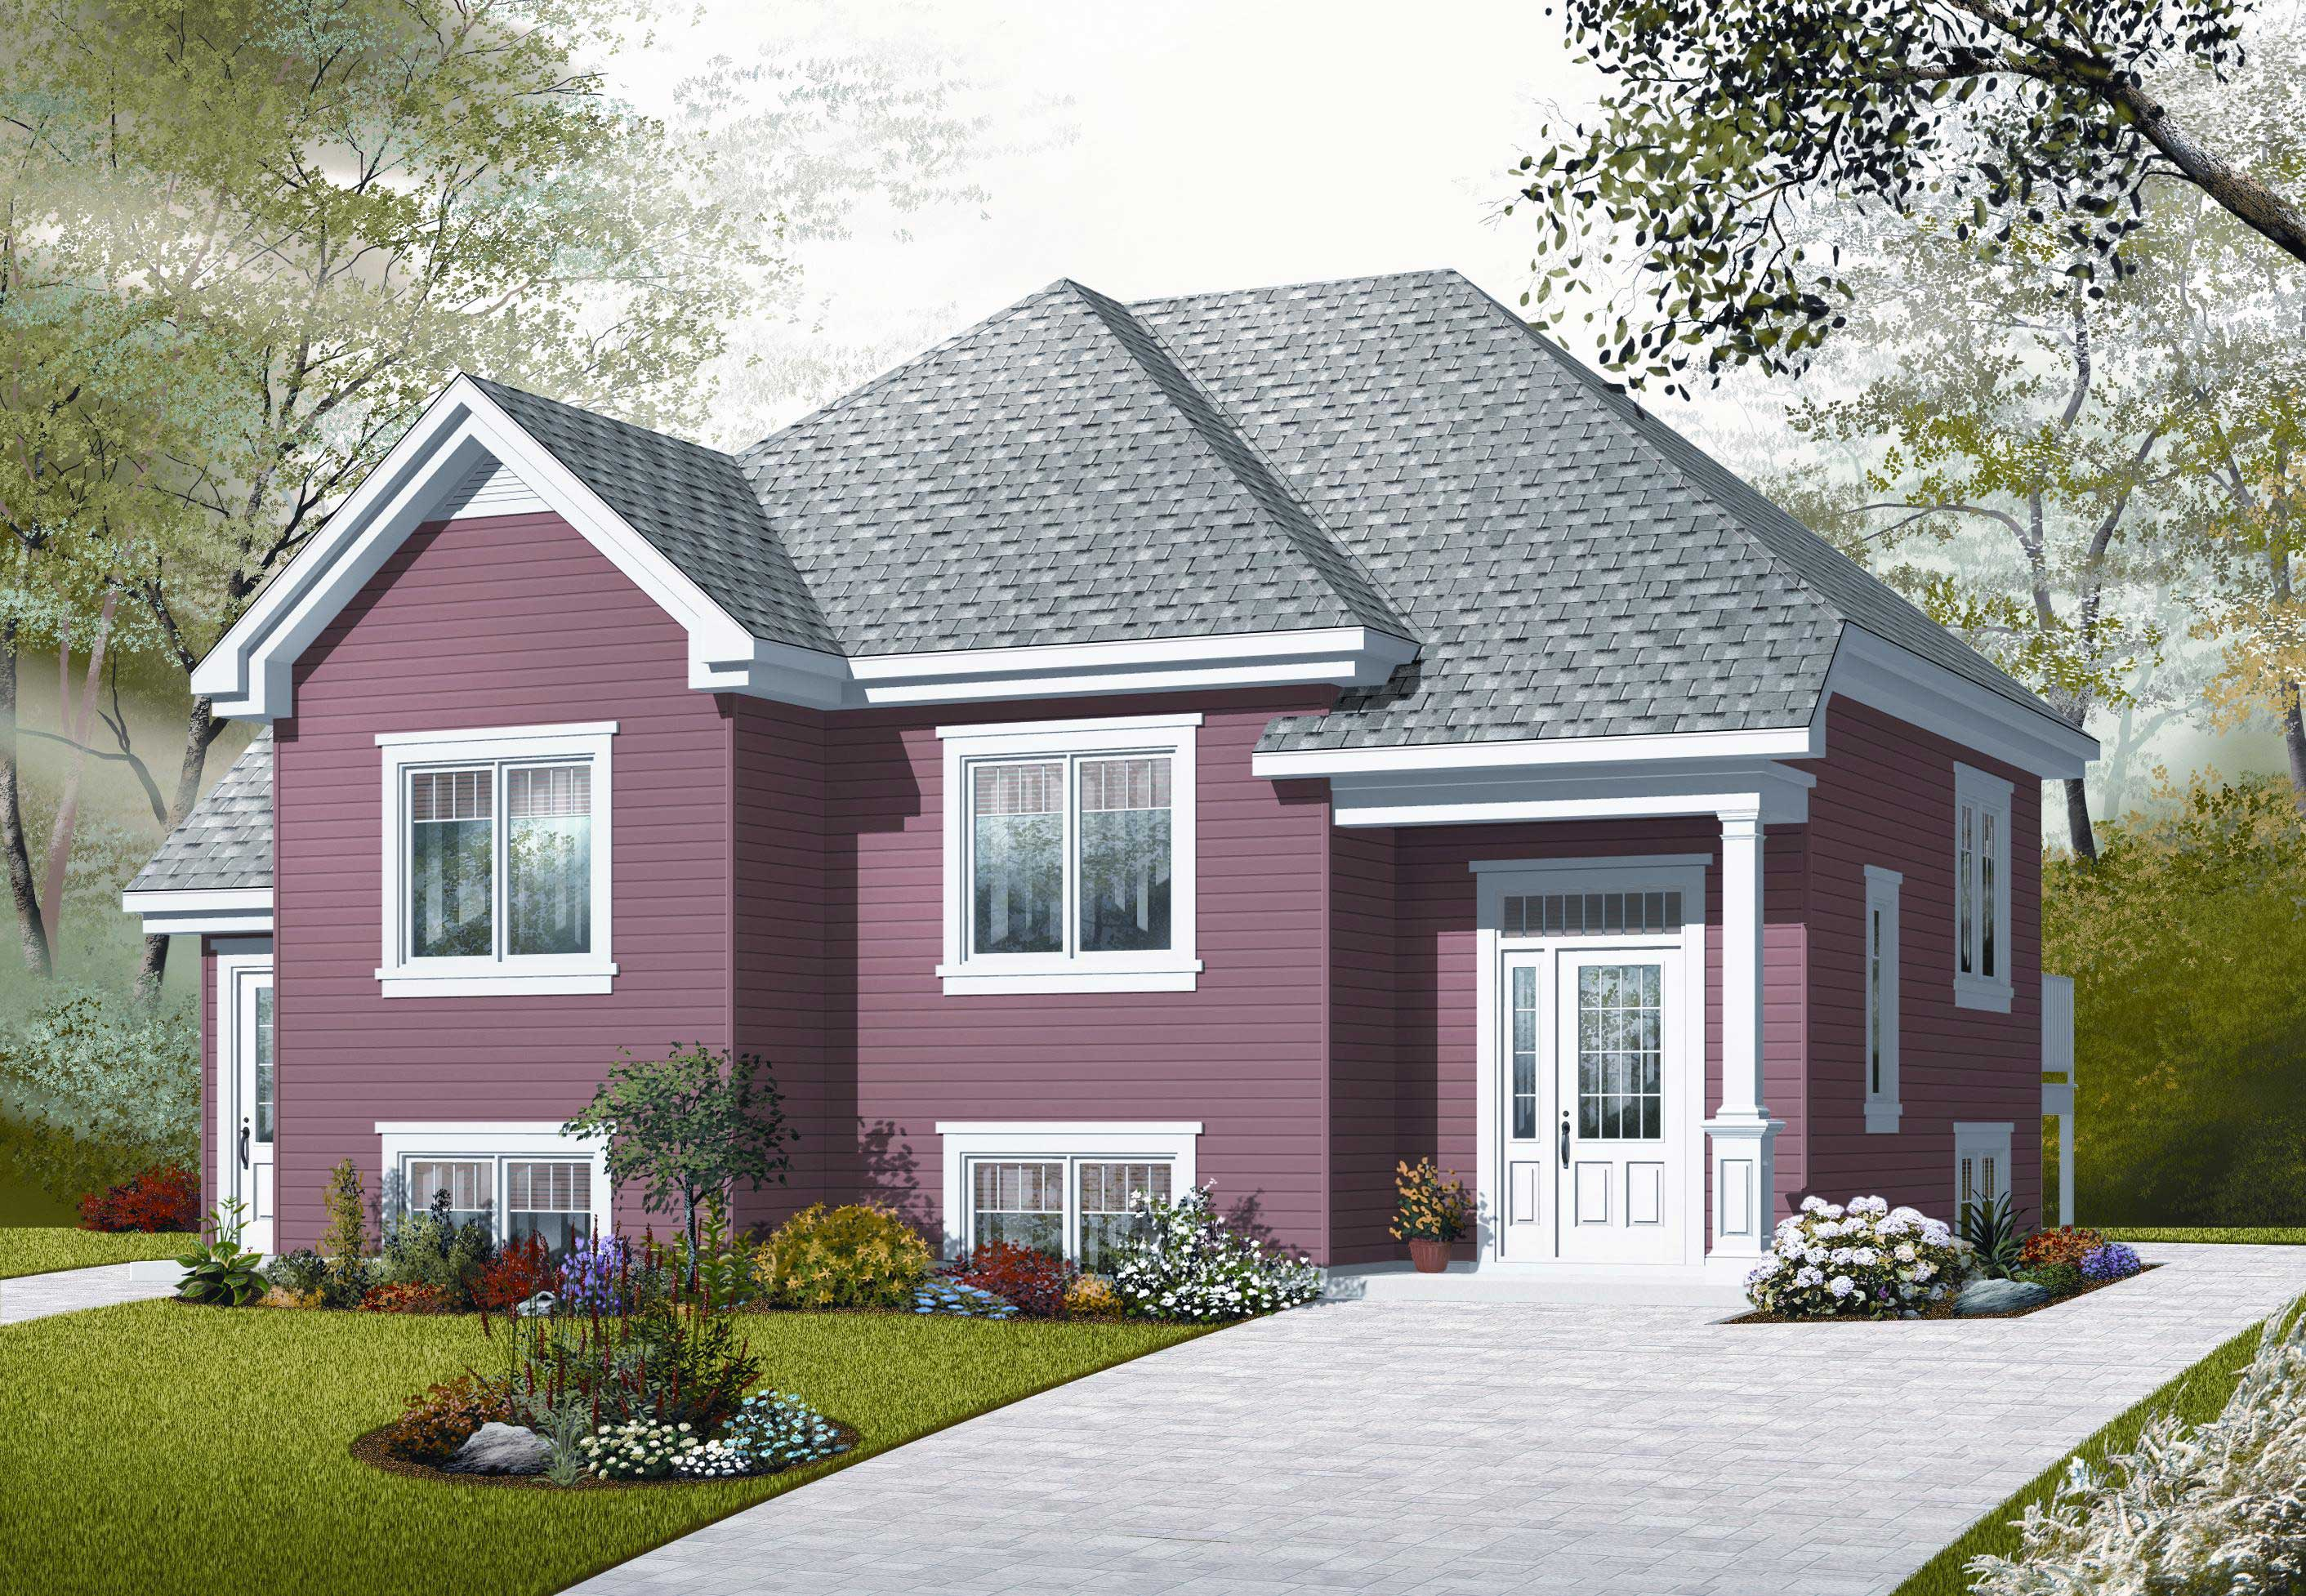 In law suite house plan 4 bedrms 2 baths 2056 sq ft for House plans with in law suite